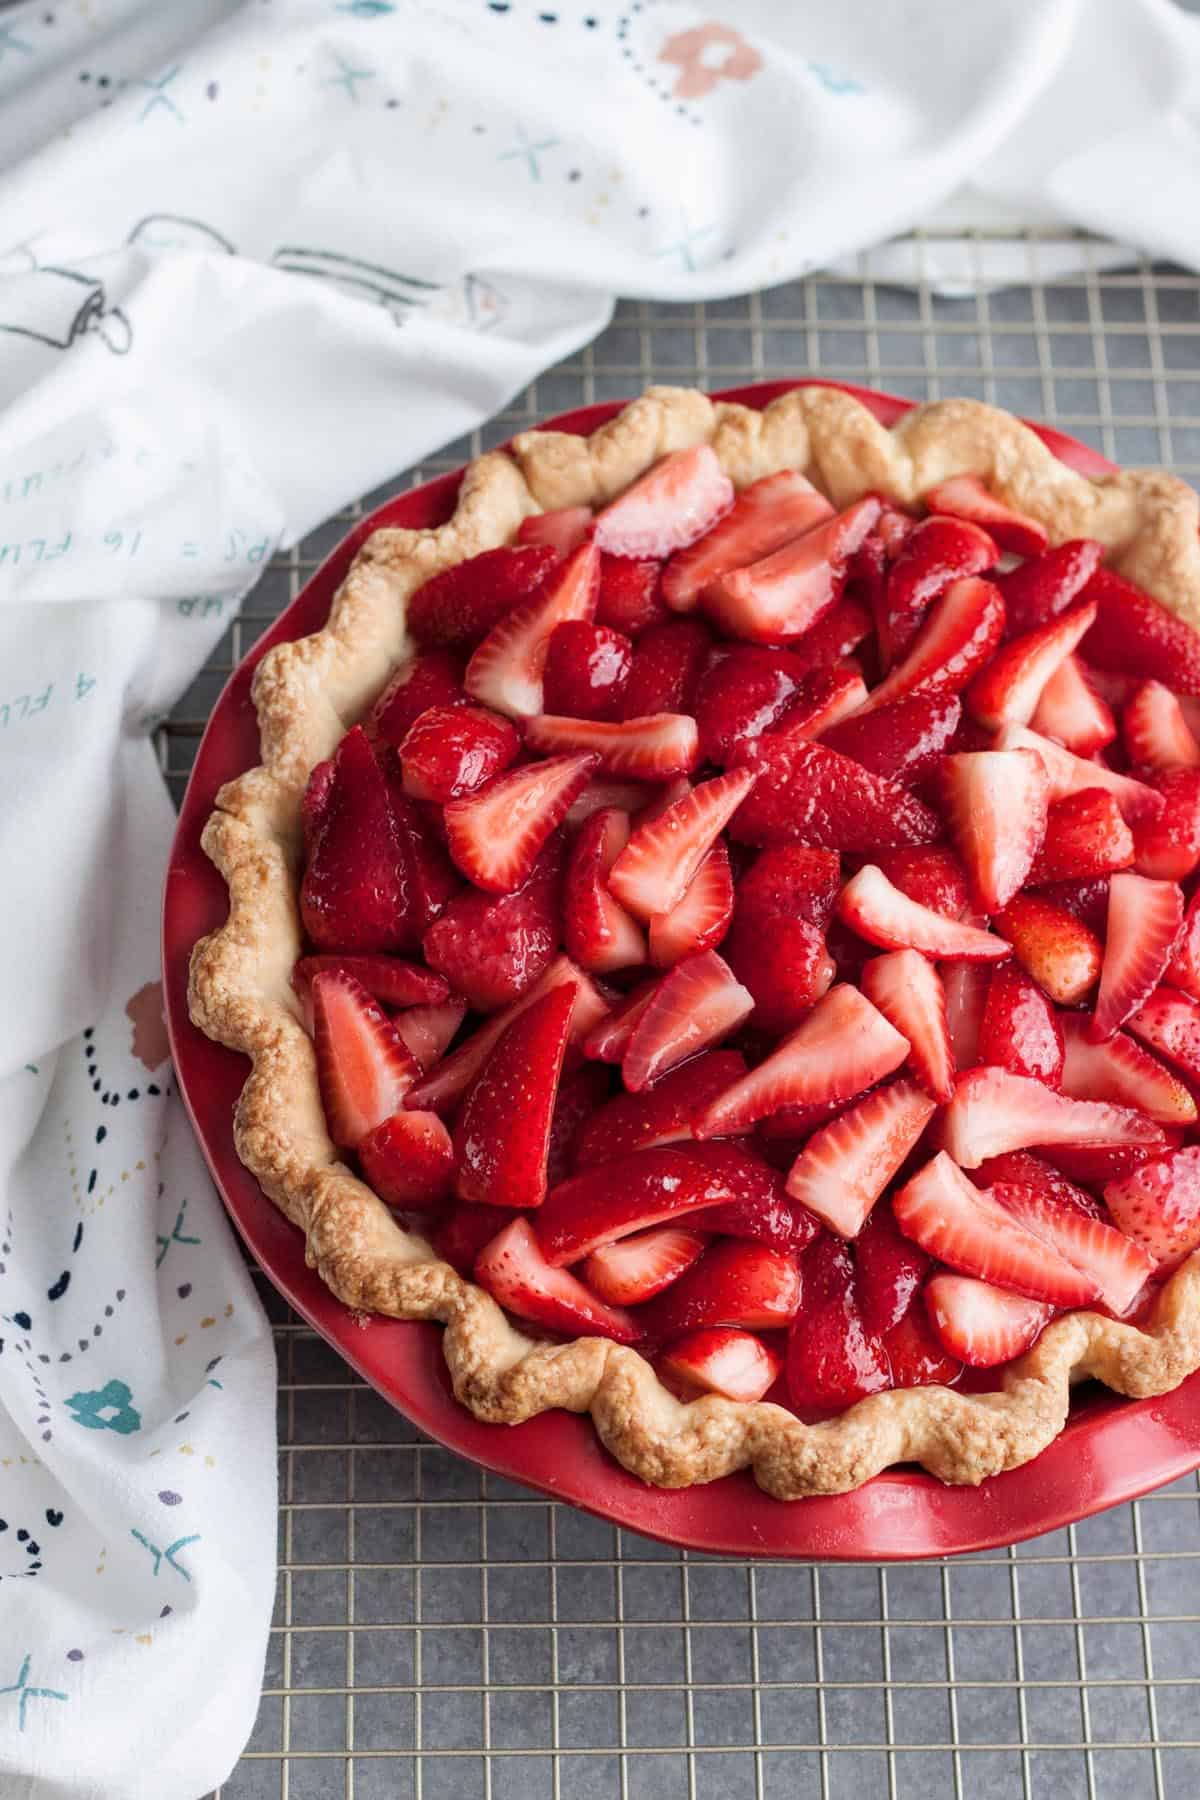 How to make Strawberry and Cream Pie